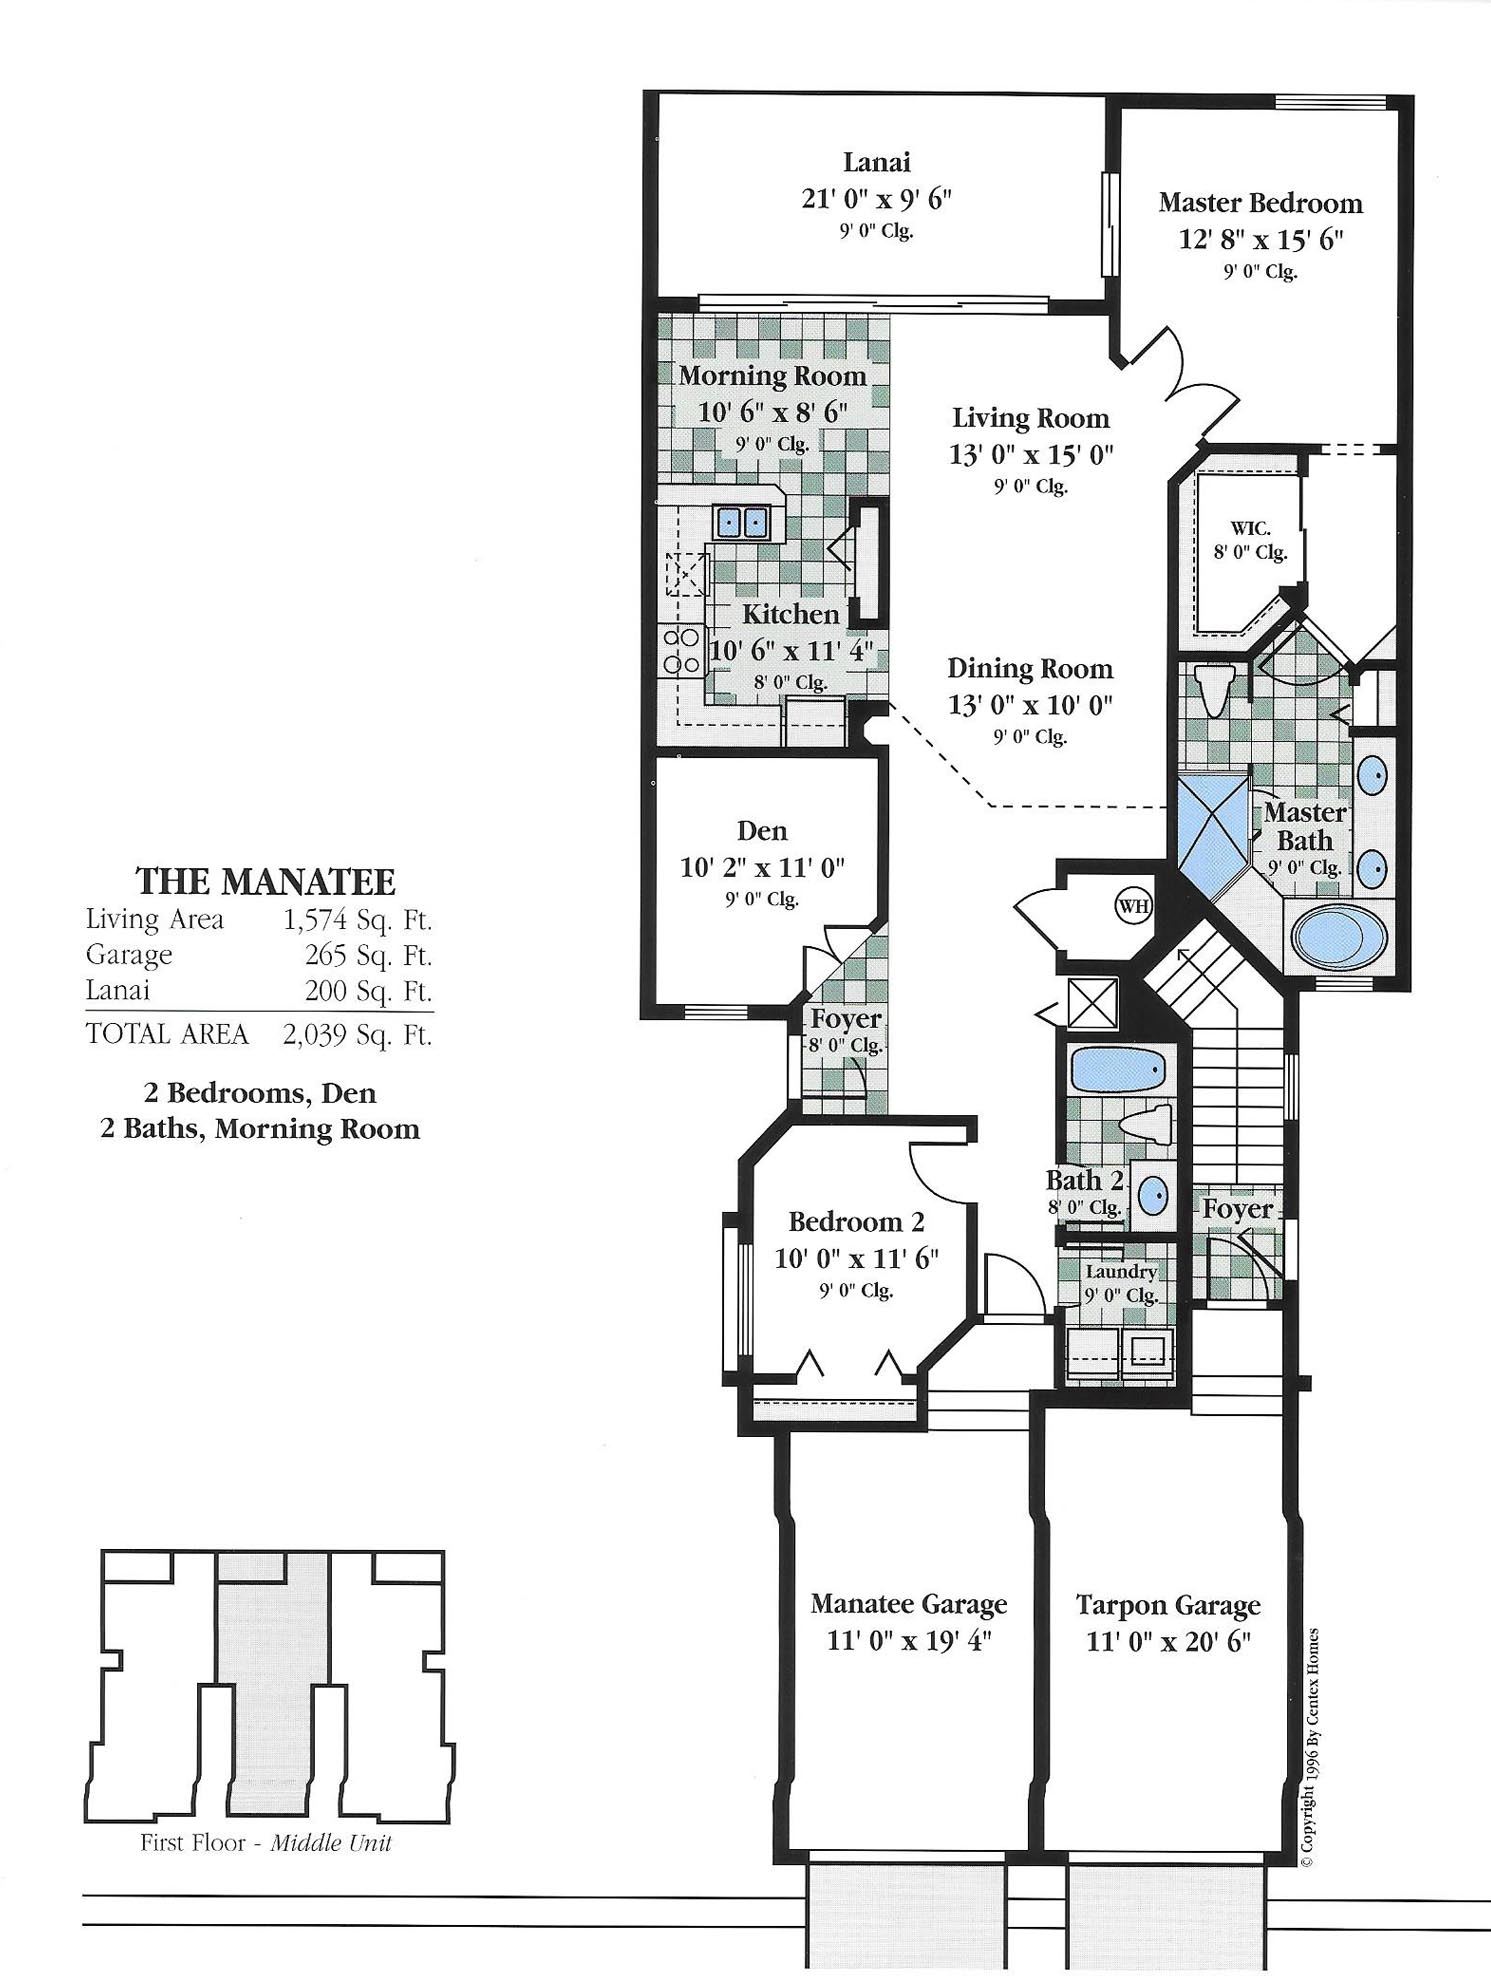 Baypointe on quail homes floor plans